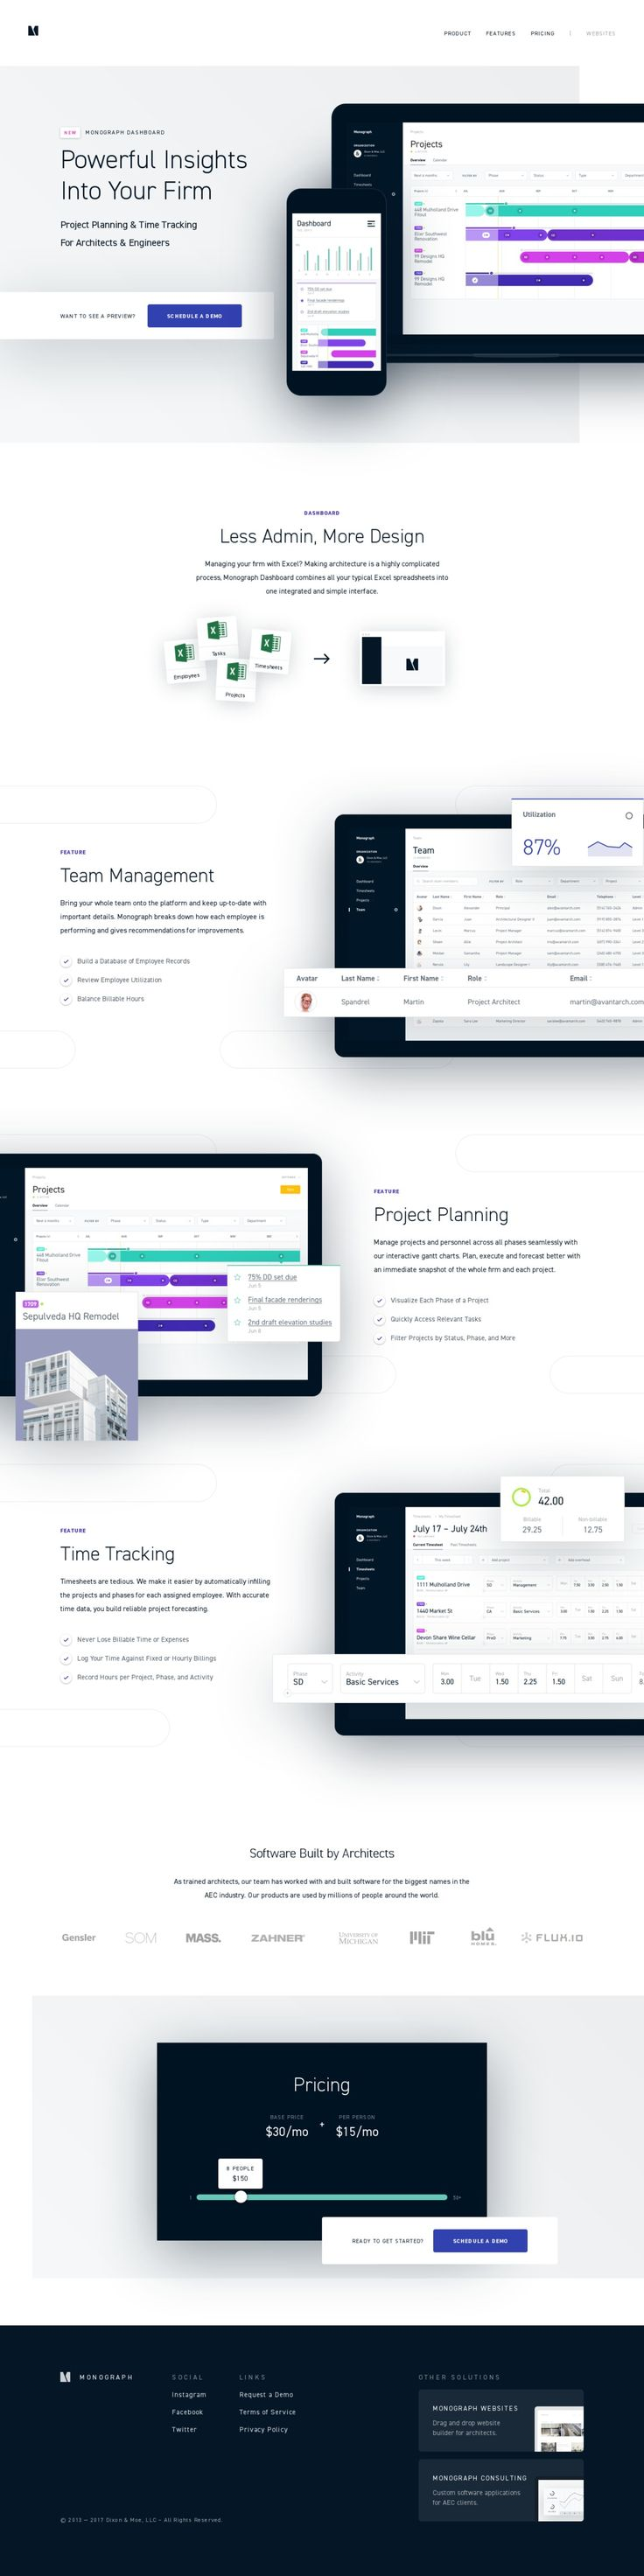 Monograph Is Project Planning And Time Tracking Software For Architects And  Engineers.